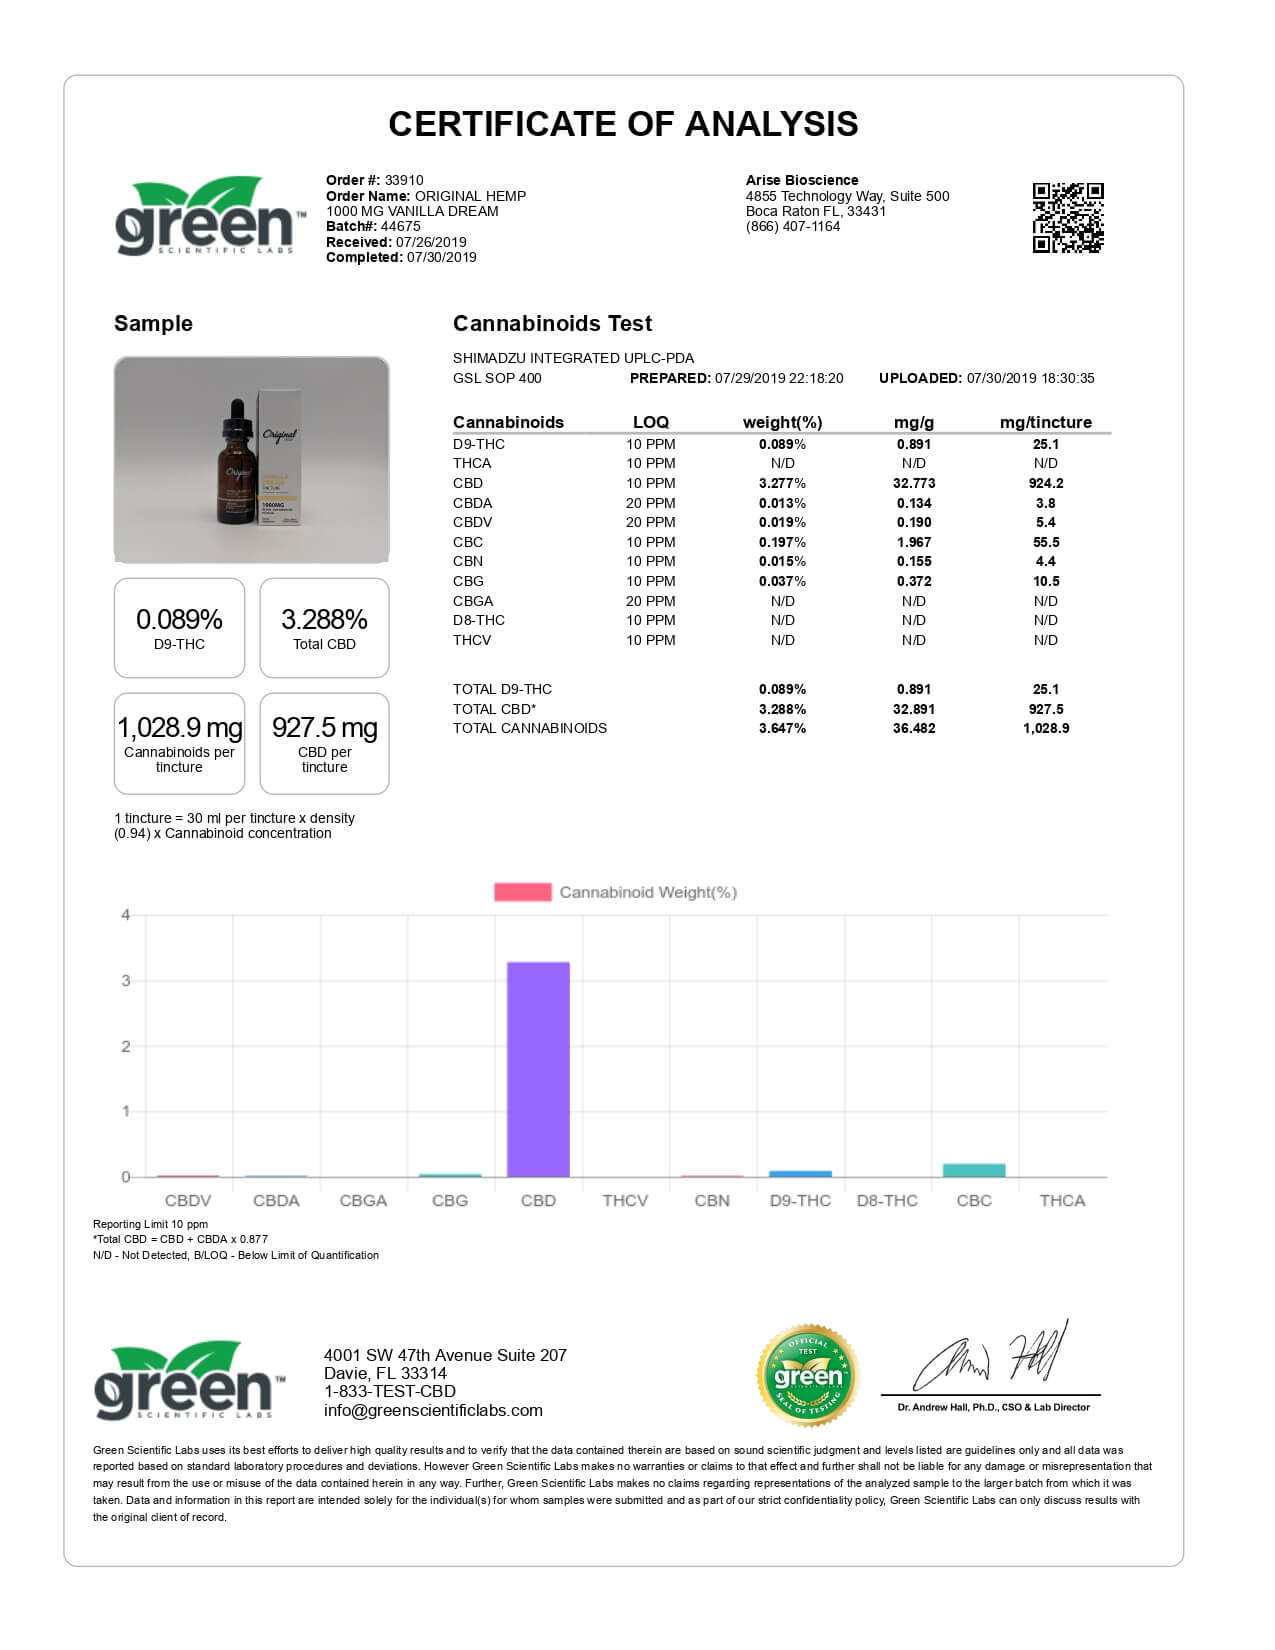 Original Hemp CBD Tincture Vanilla Dream 1000mg Lab Report